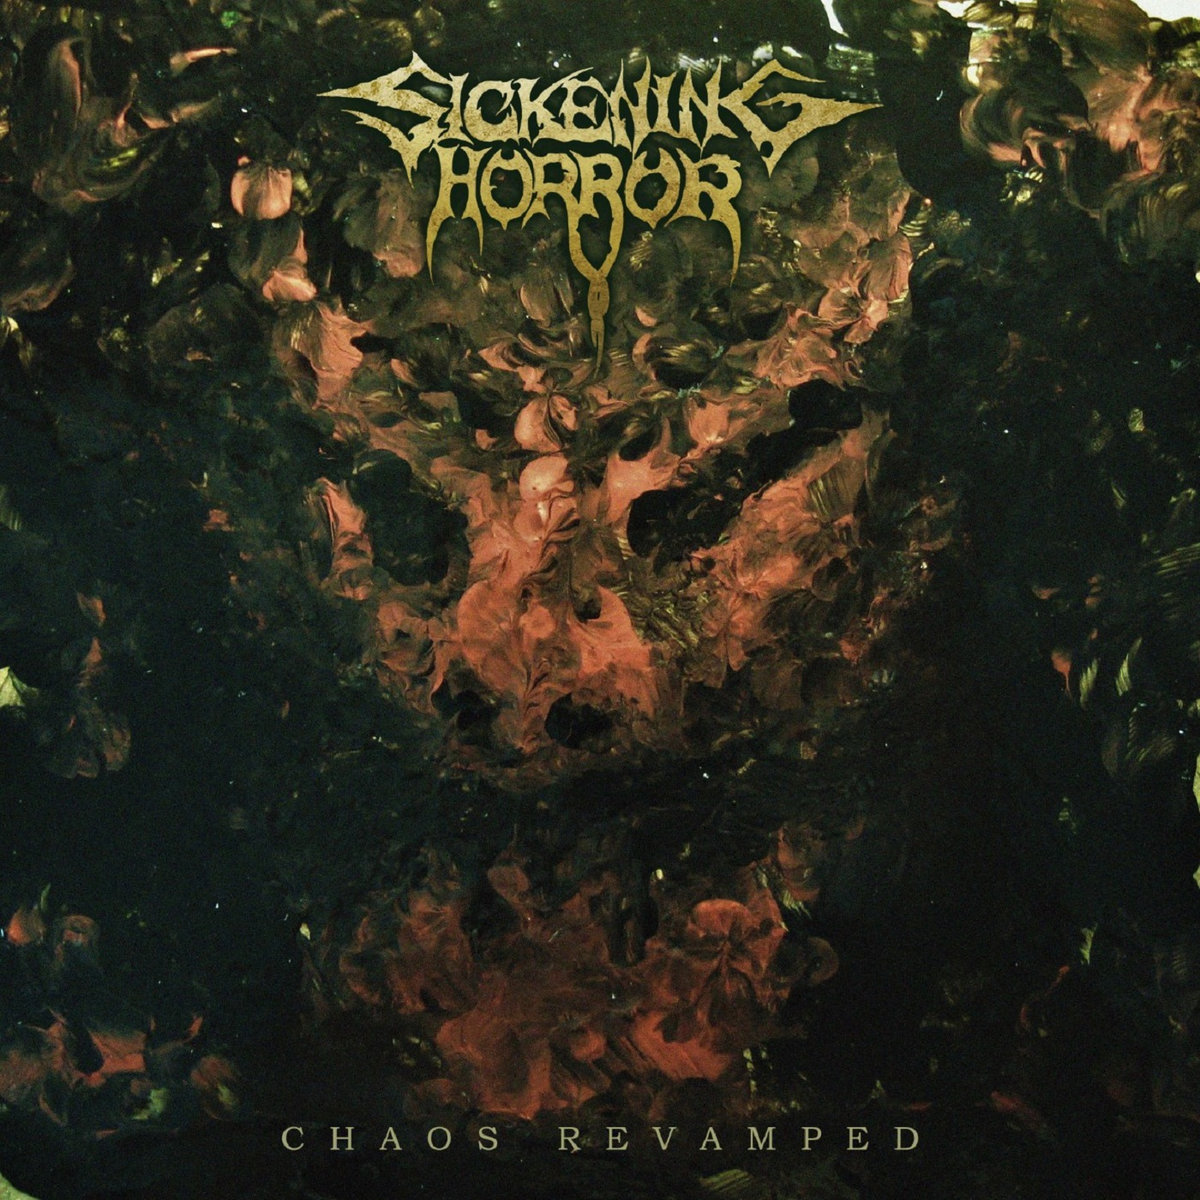 Sickening Horror - Chaos Revamped (2020) [FLAC] Download